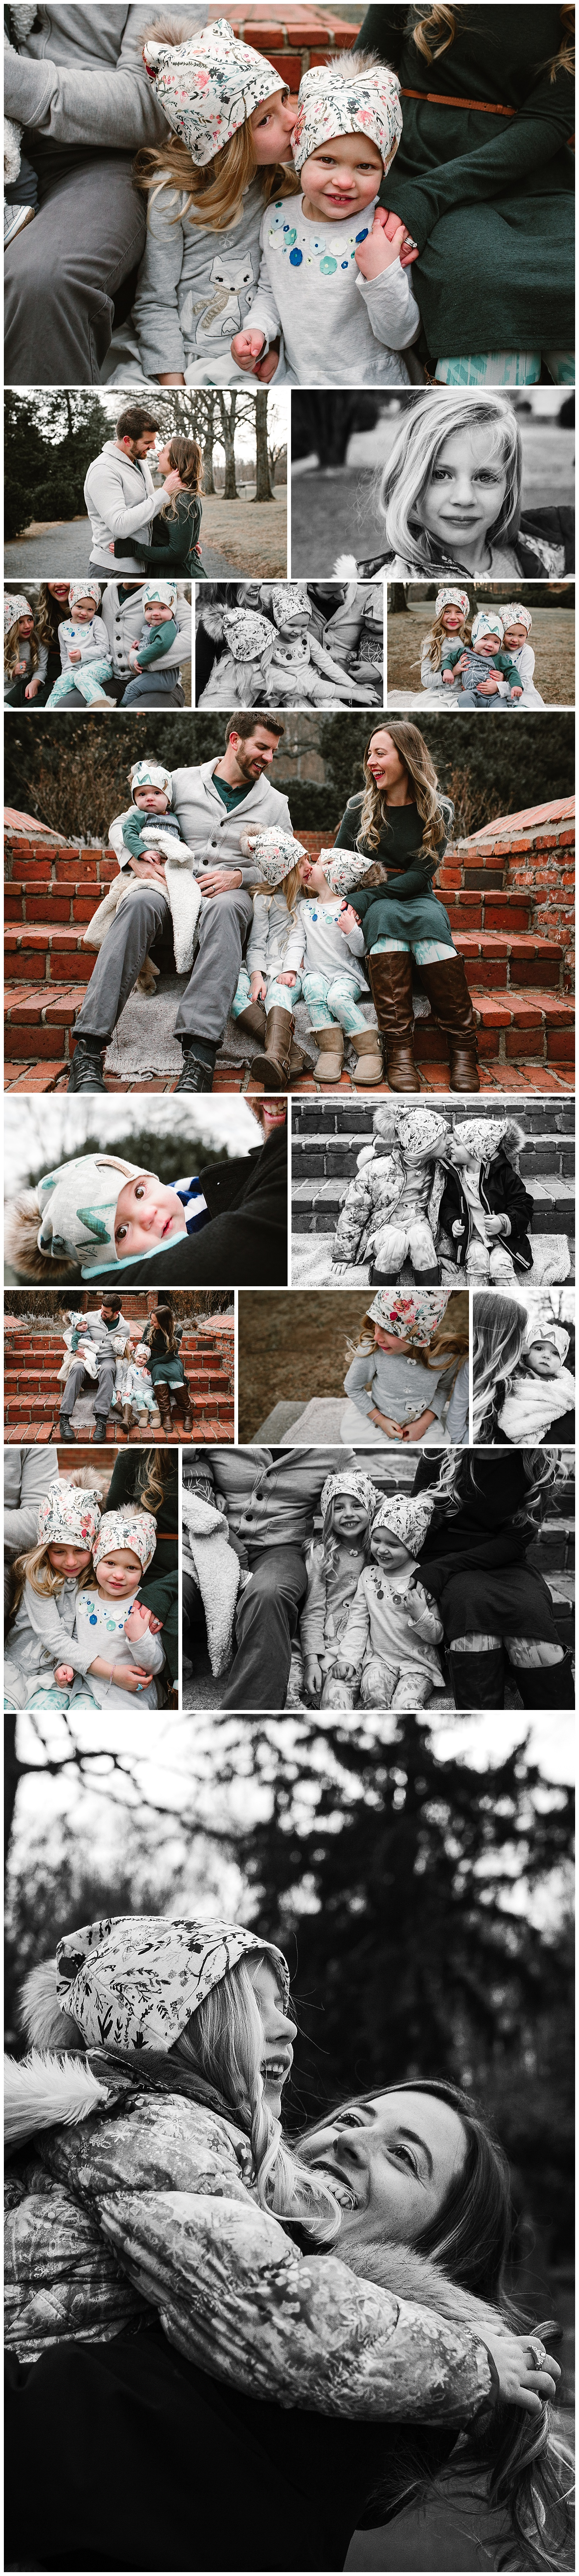 Leesburg Virginia family photography